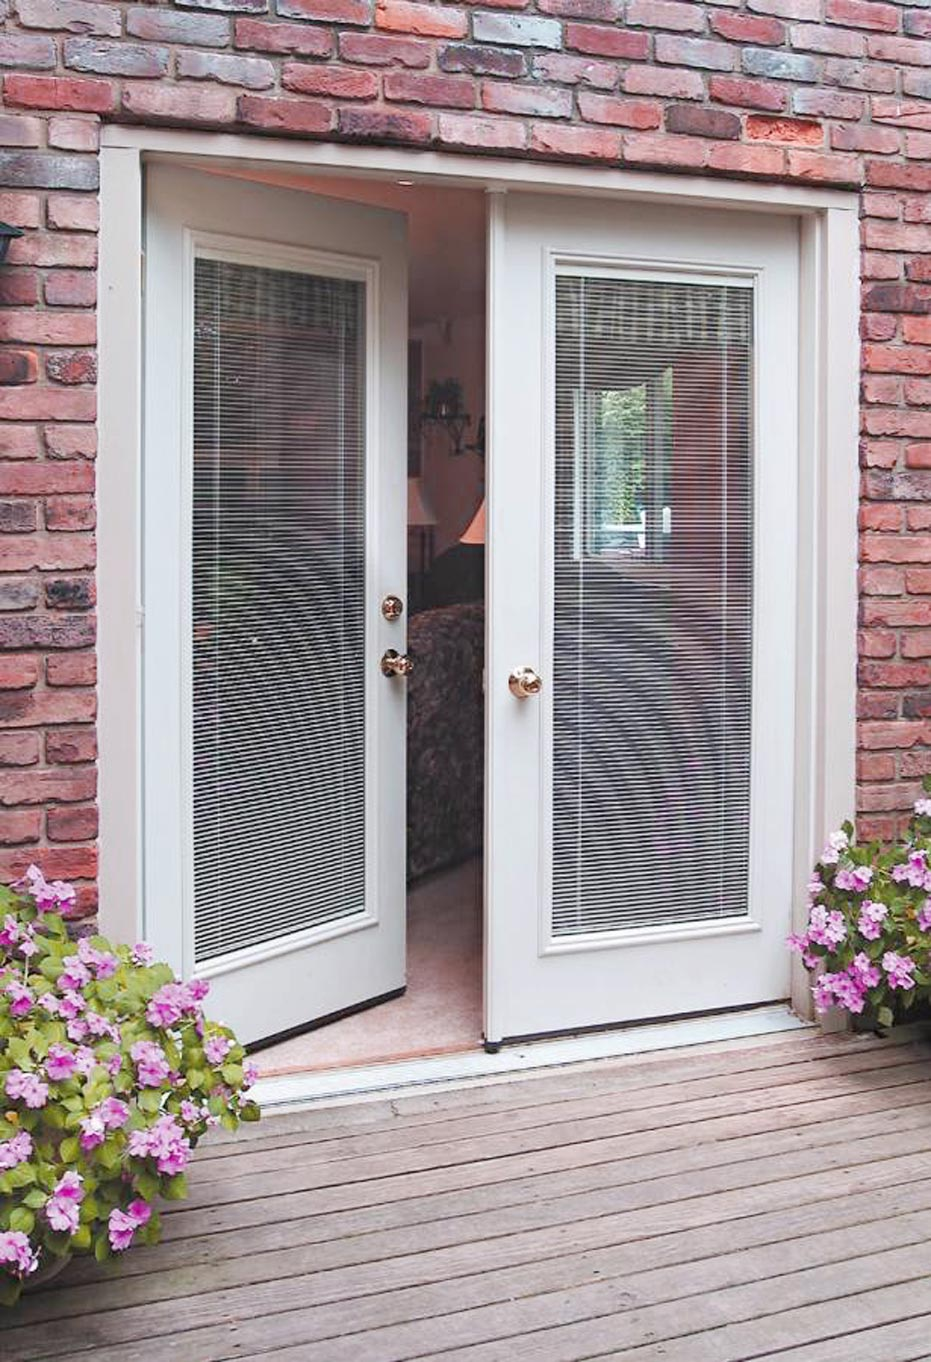 French Patio Doors With Built In Blinds 7 Spotlats Org